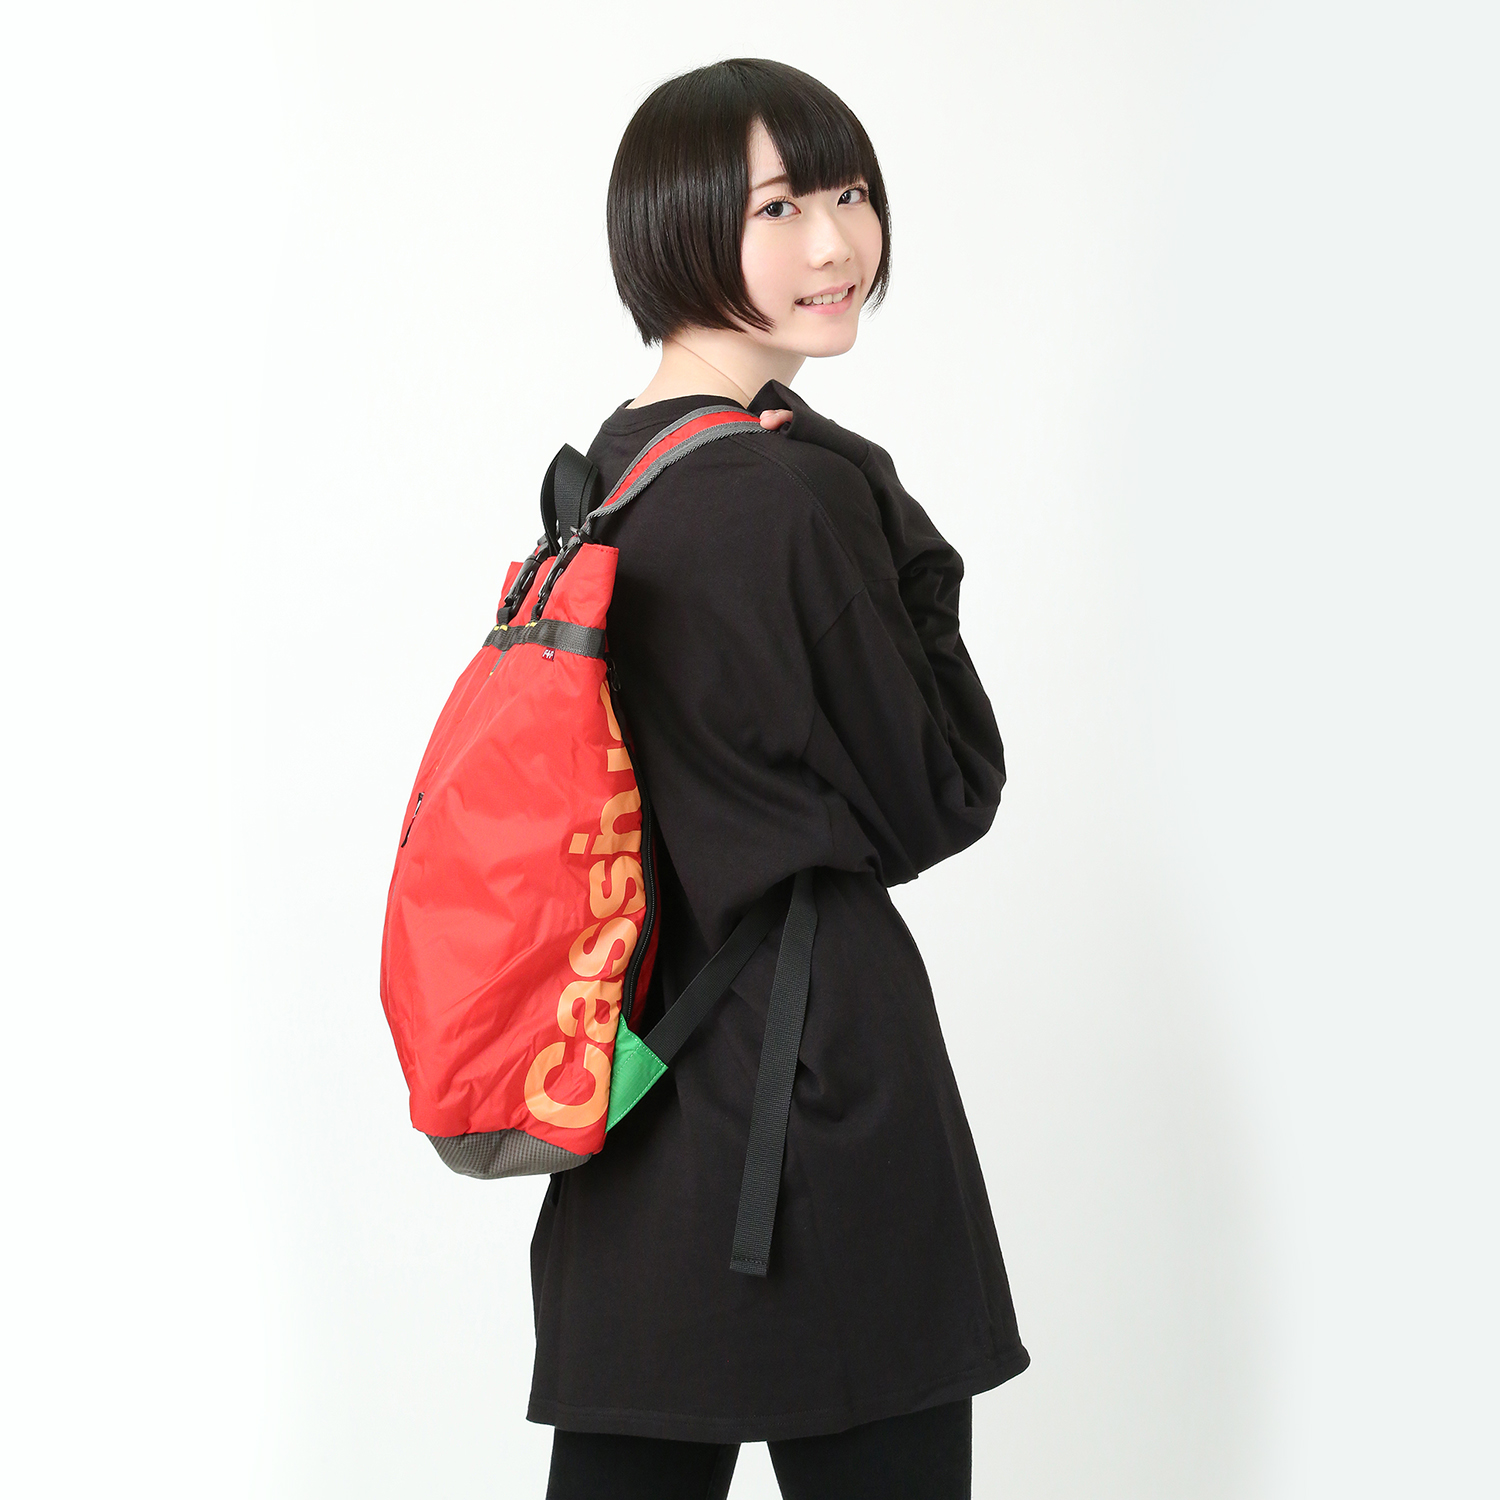 EVANGELION ABOVE AIR RUCK SACK by FIRE FIRST (EVA-02γ MDOEL)